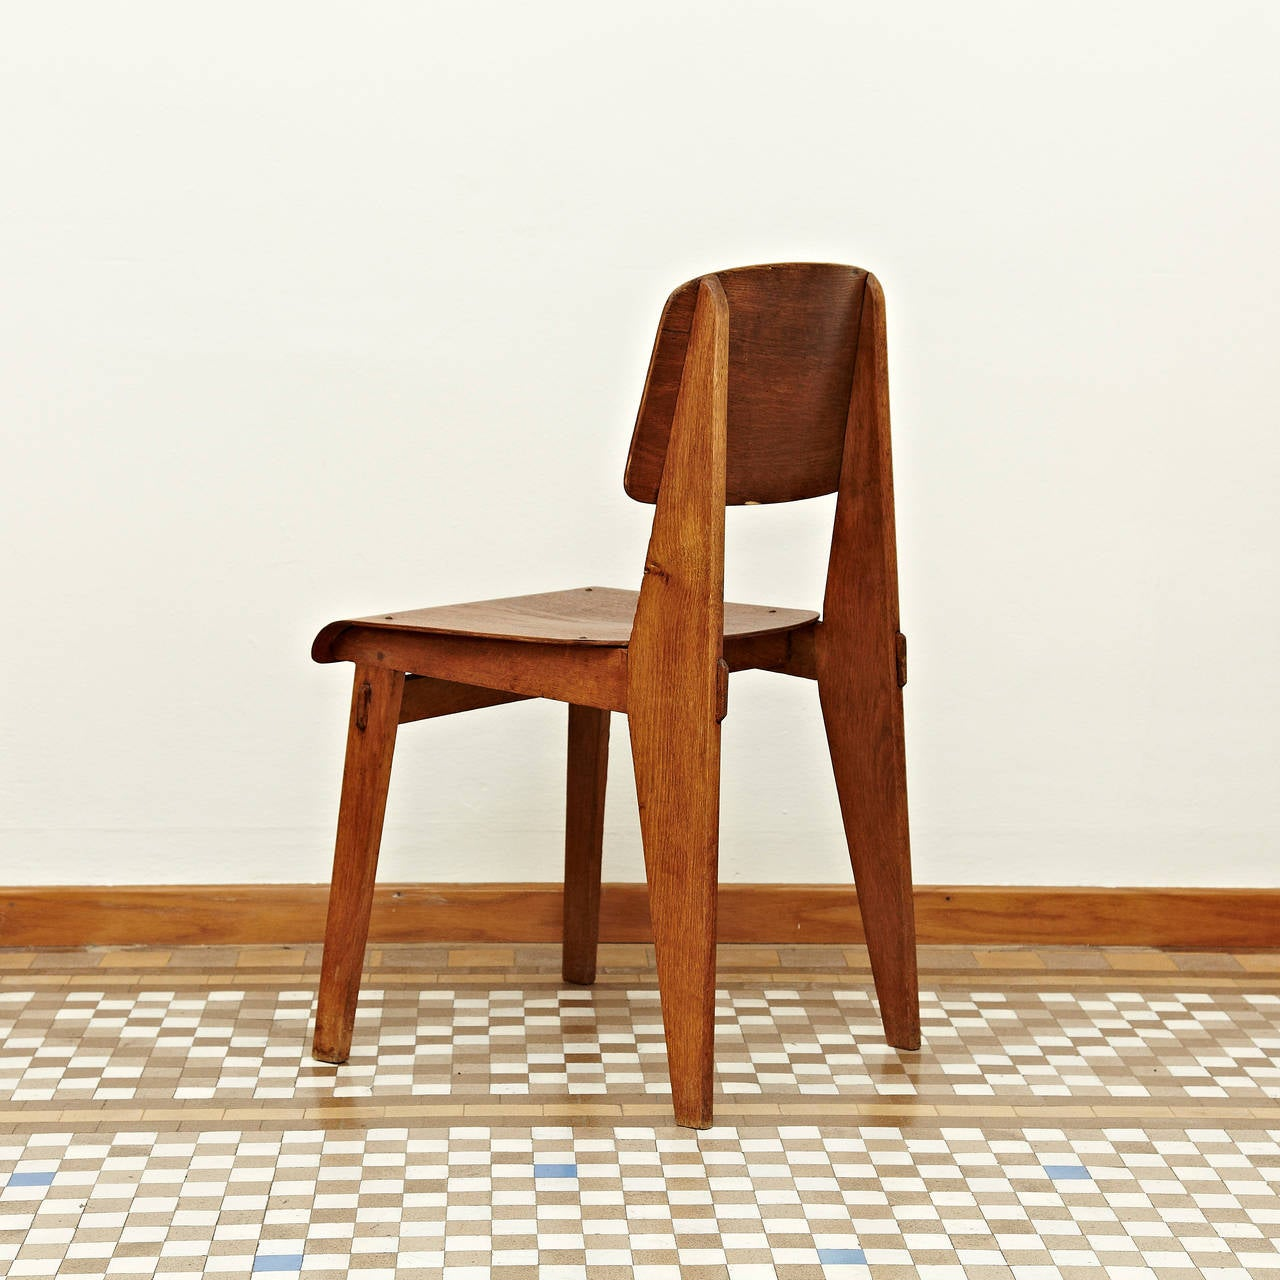 prouve standard chair haworth task jean prouvé quottout bois quot 1941 at 1stdibs